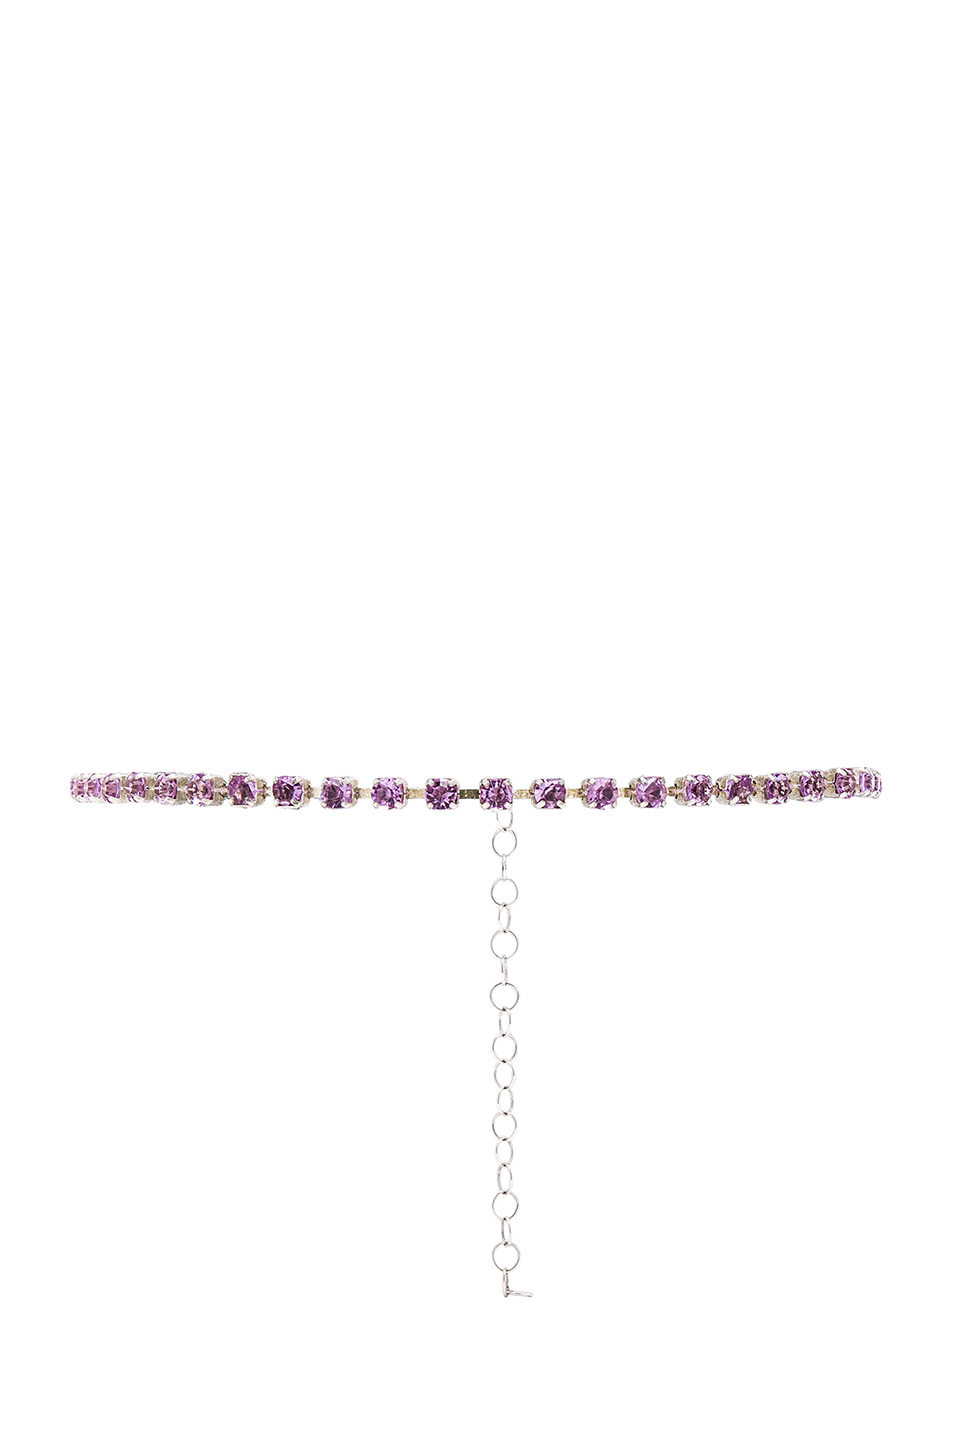 ERTH for FWRD Sterling Silver Crystal Necklace in Pink,Metallics